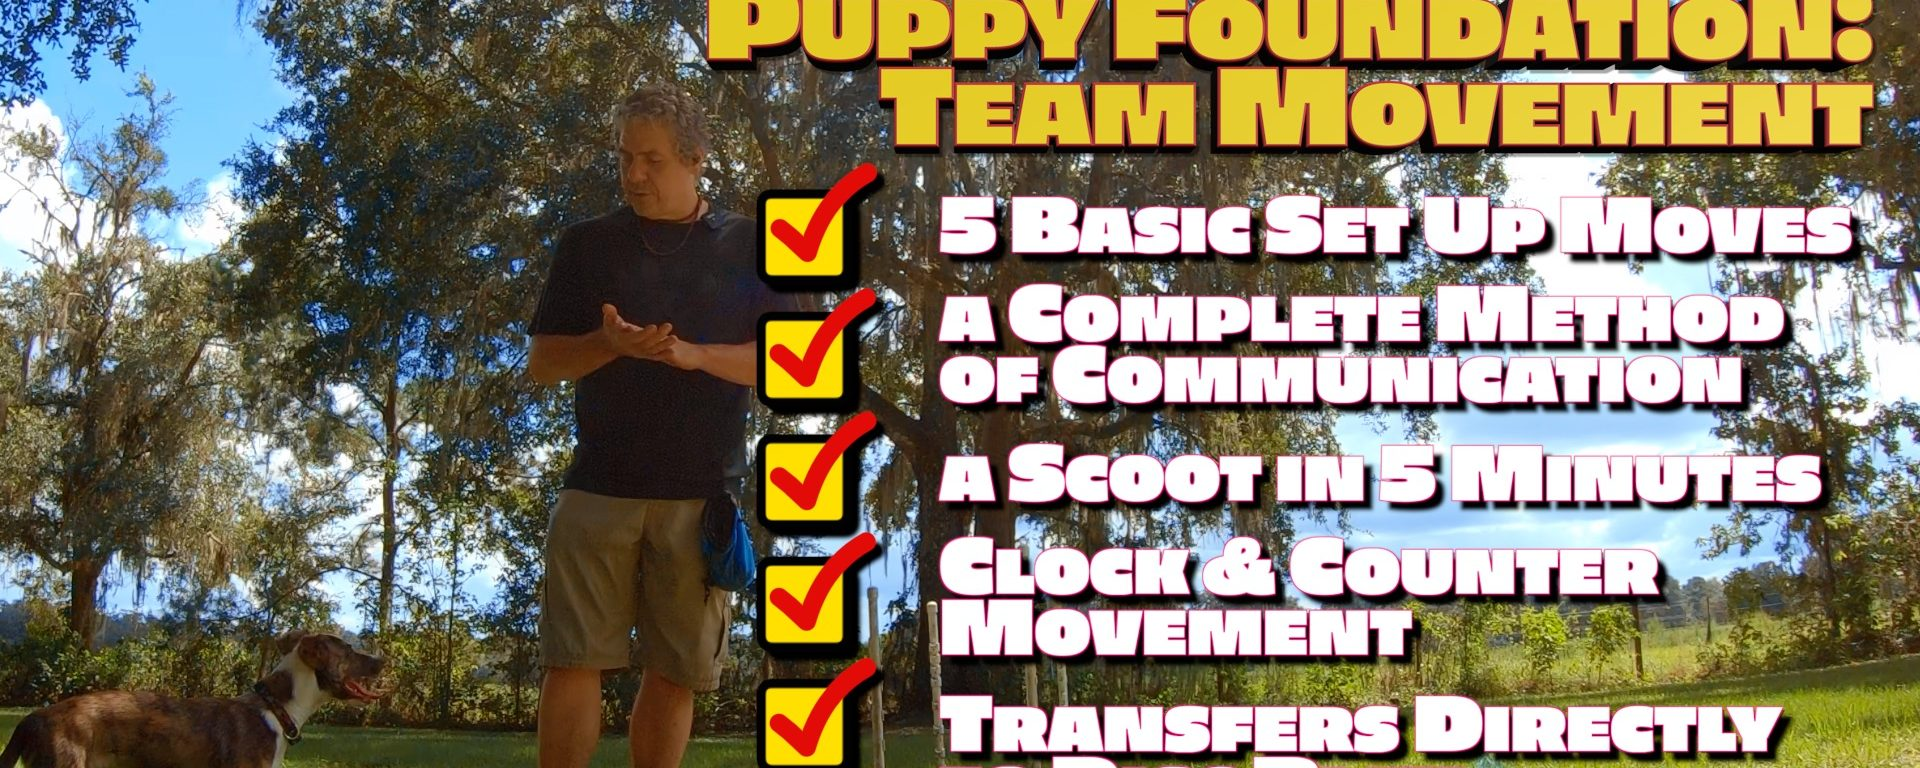 Everything Your Puppy Needs to Know About Team Movement in 5 Minutes